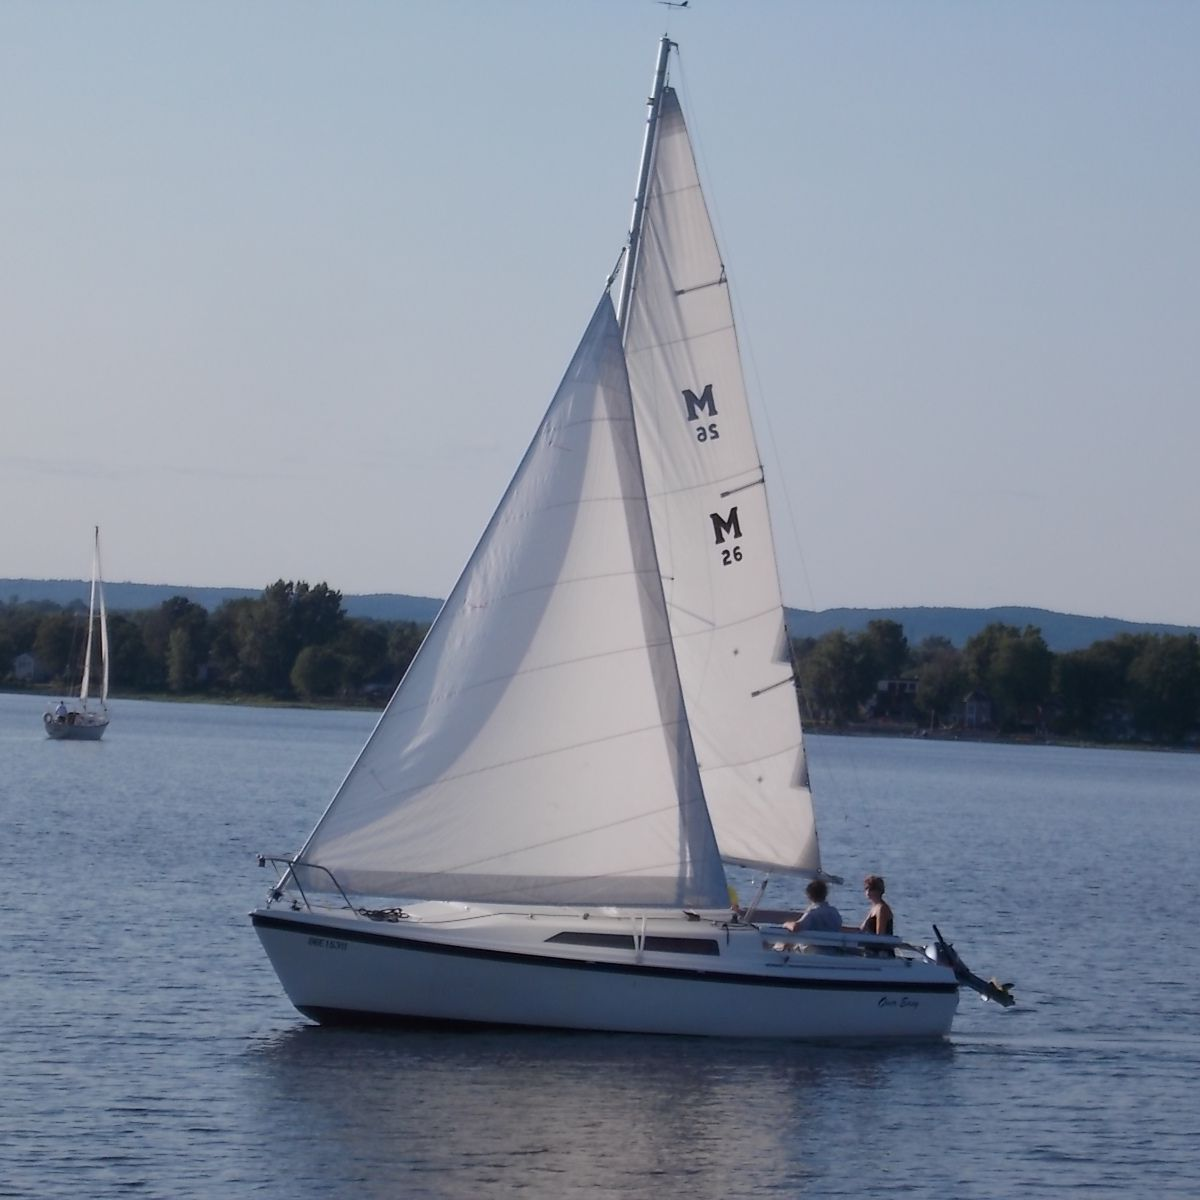 Review of MacGregor Trailerable Sailboat